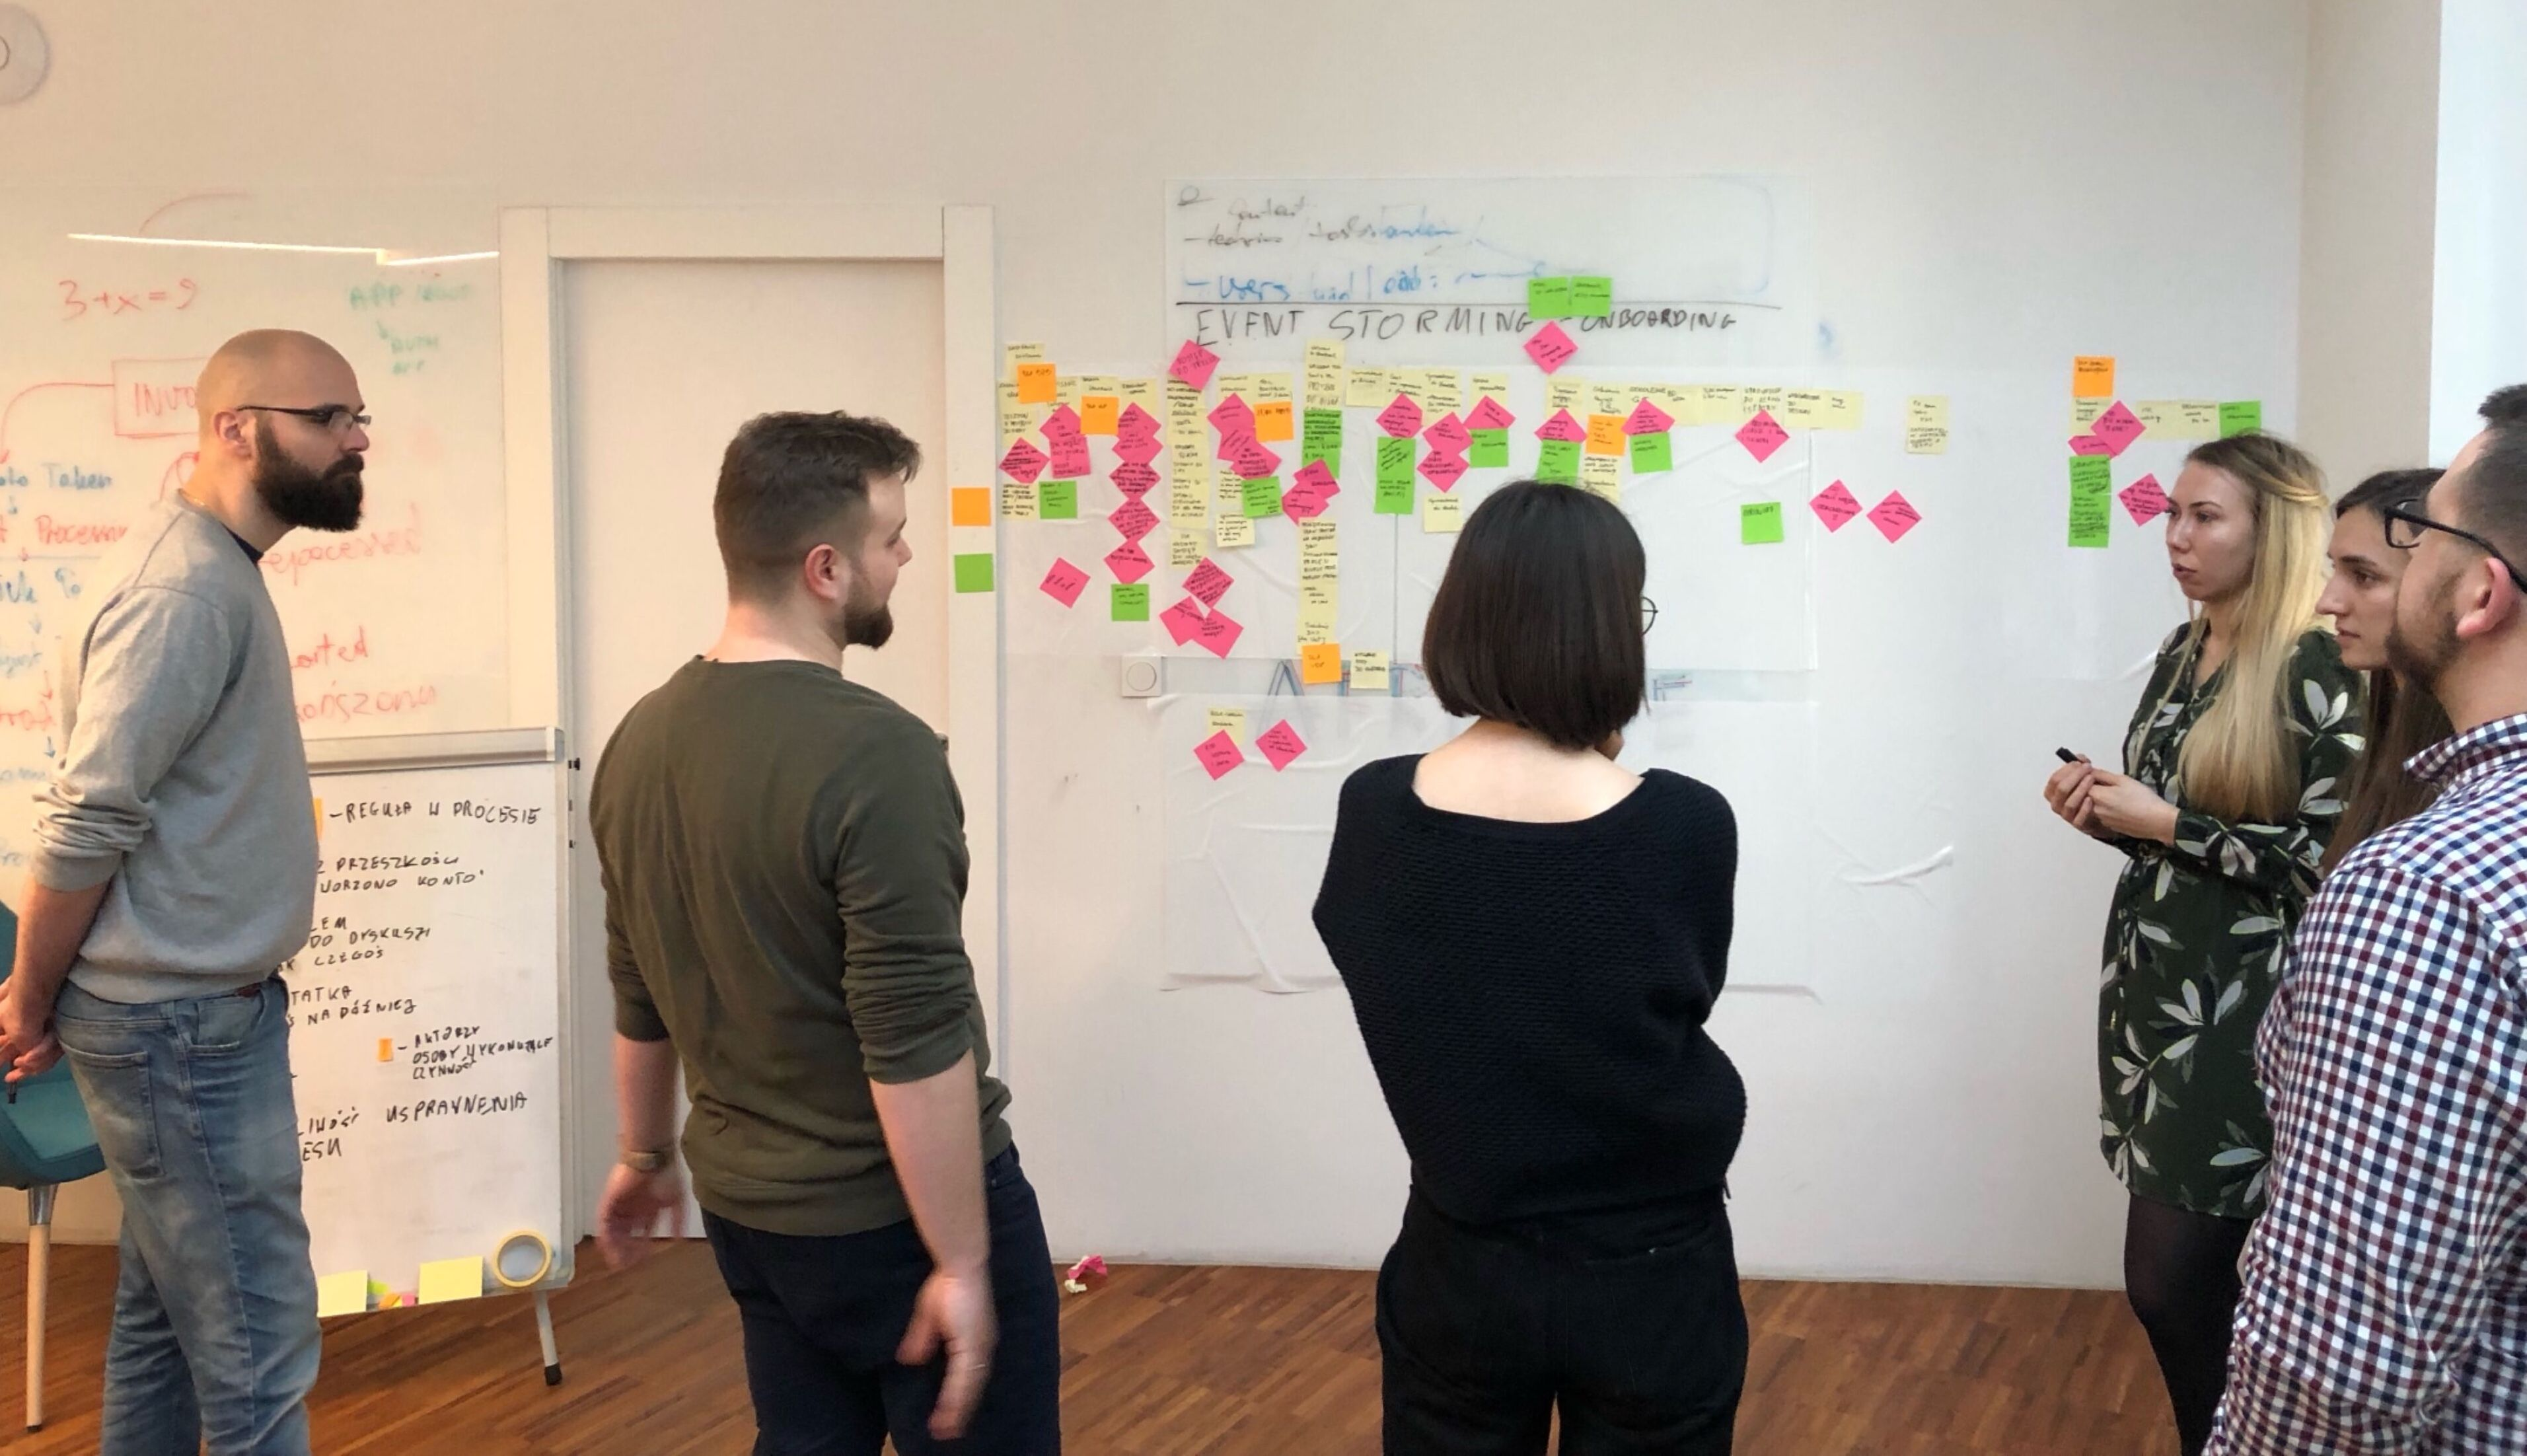 Event Storming in HR onboarding process at Monterail